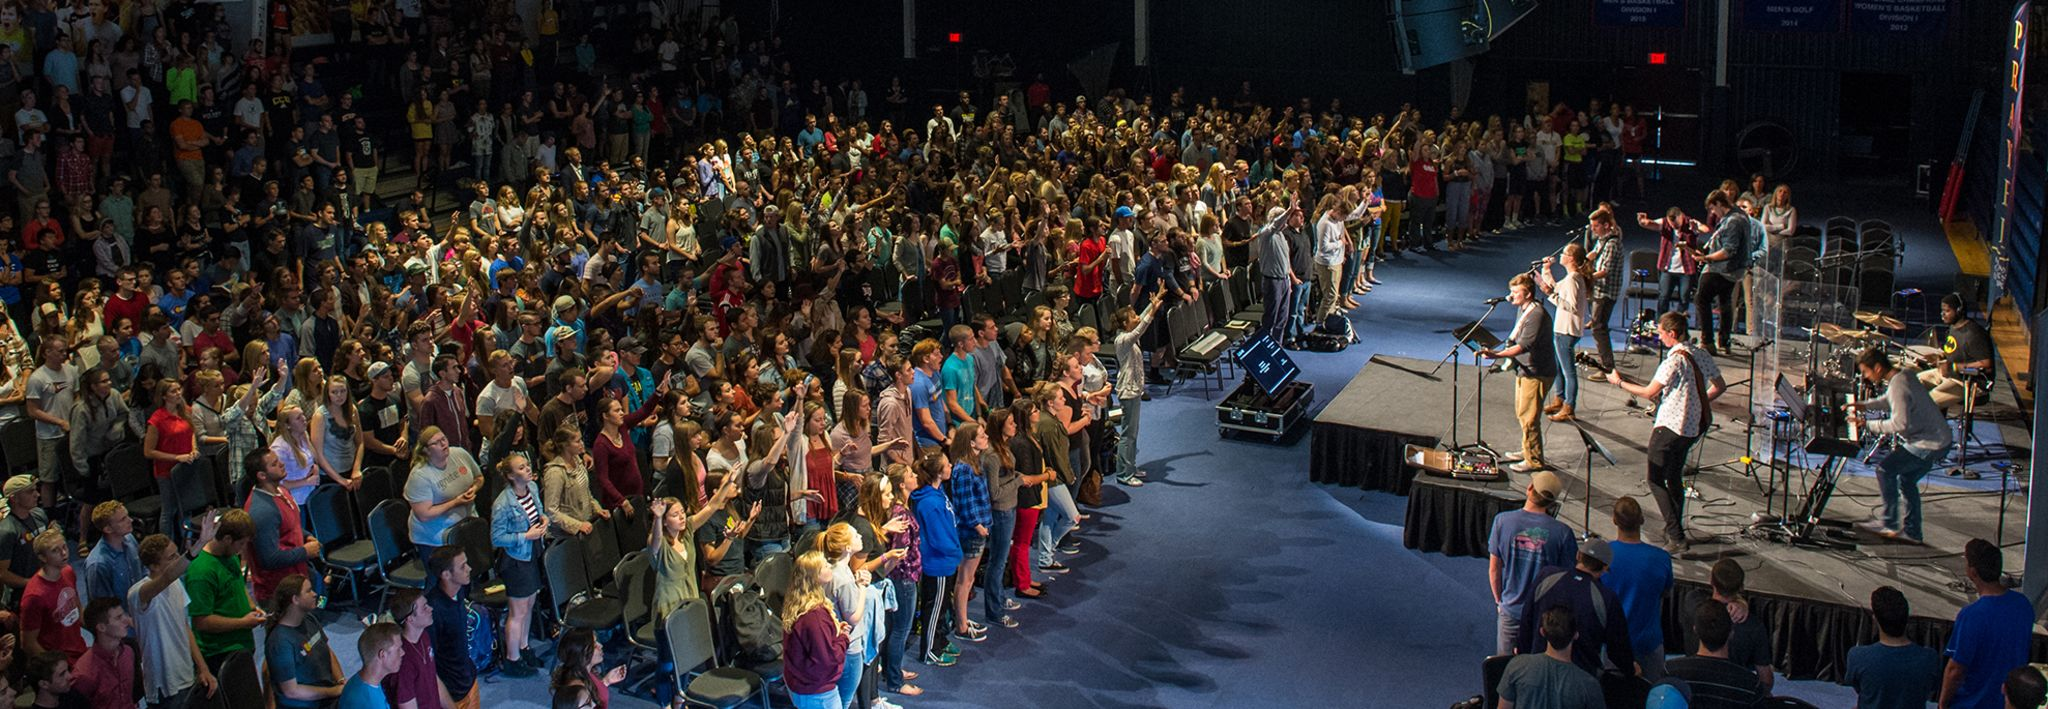 Colorado Christian University students worshiping in chapel.